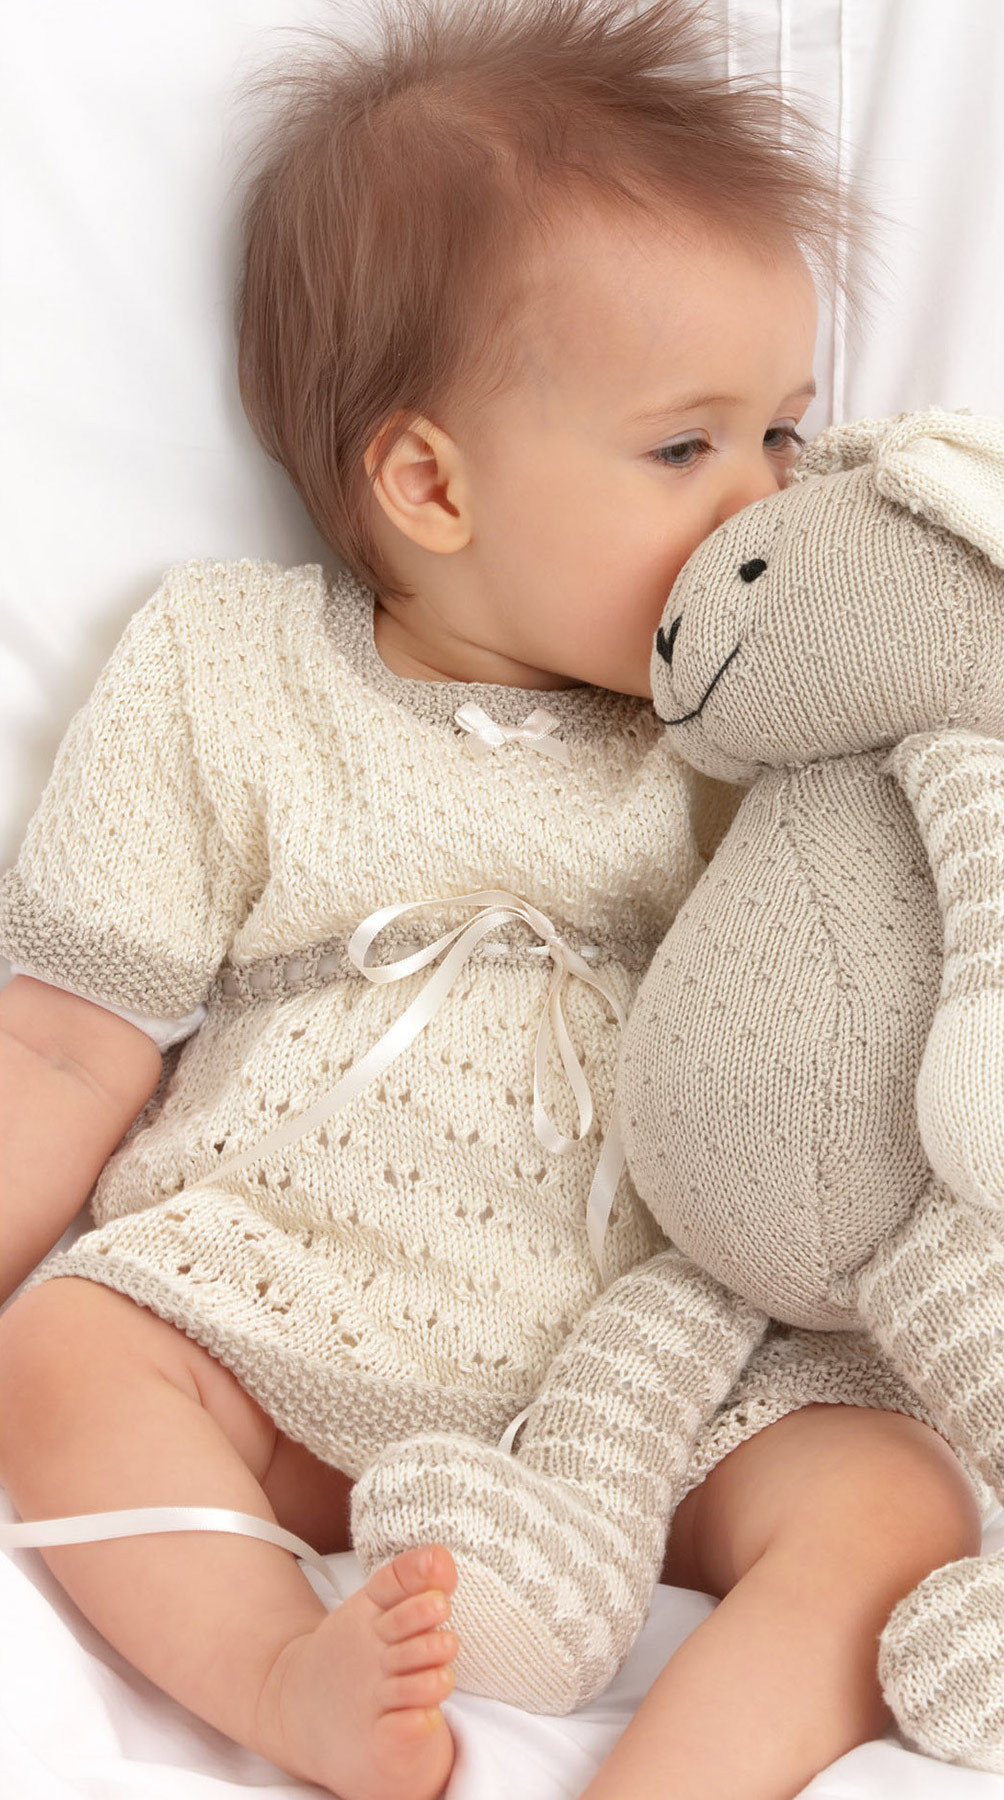 Elegant Baby Lace Dress Knitting Pattern Baby Patterns Of New 50 Ideas Baby Patterns